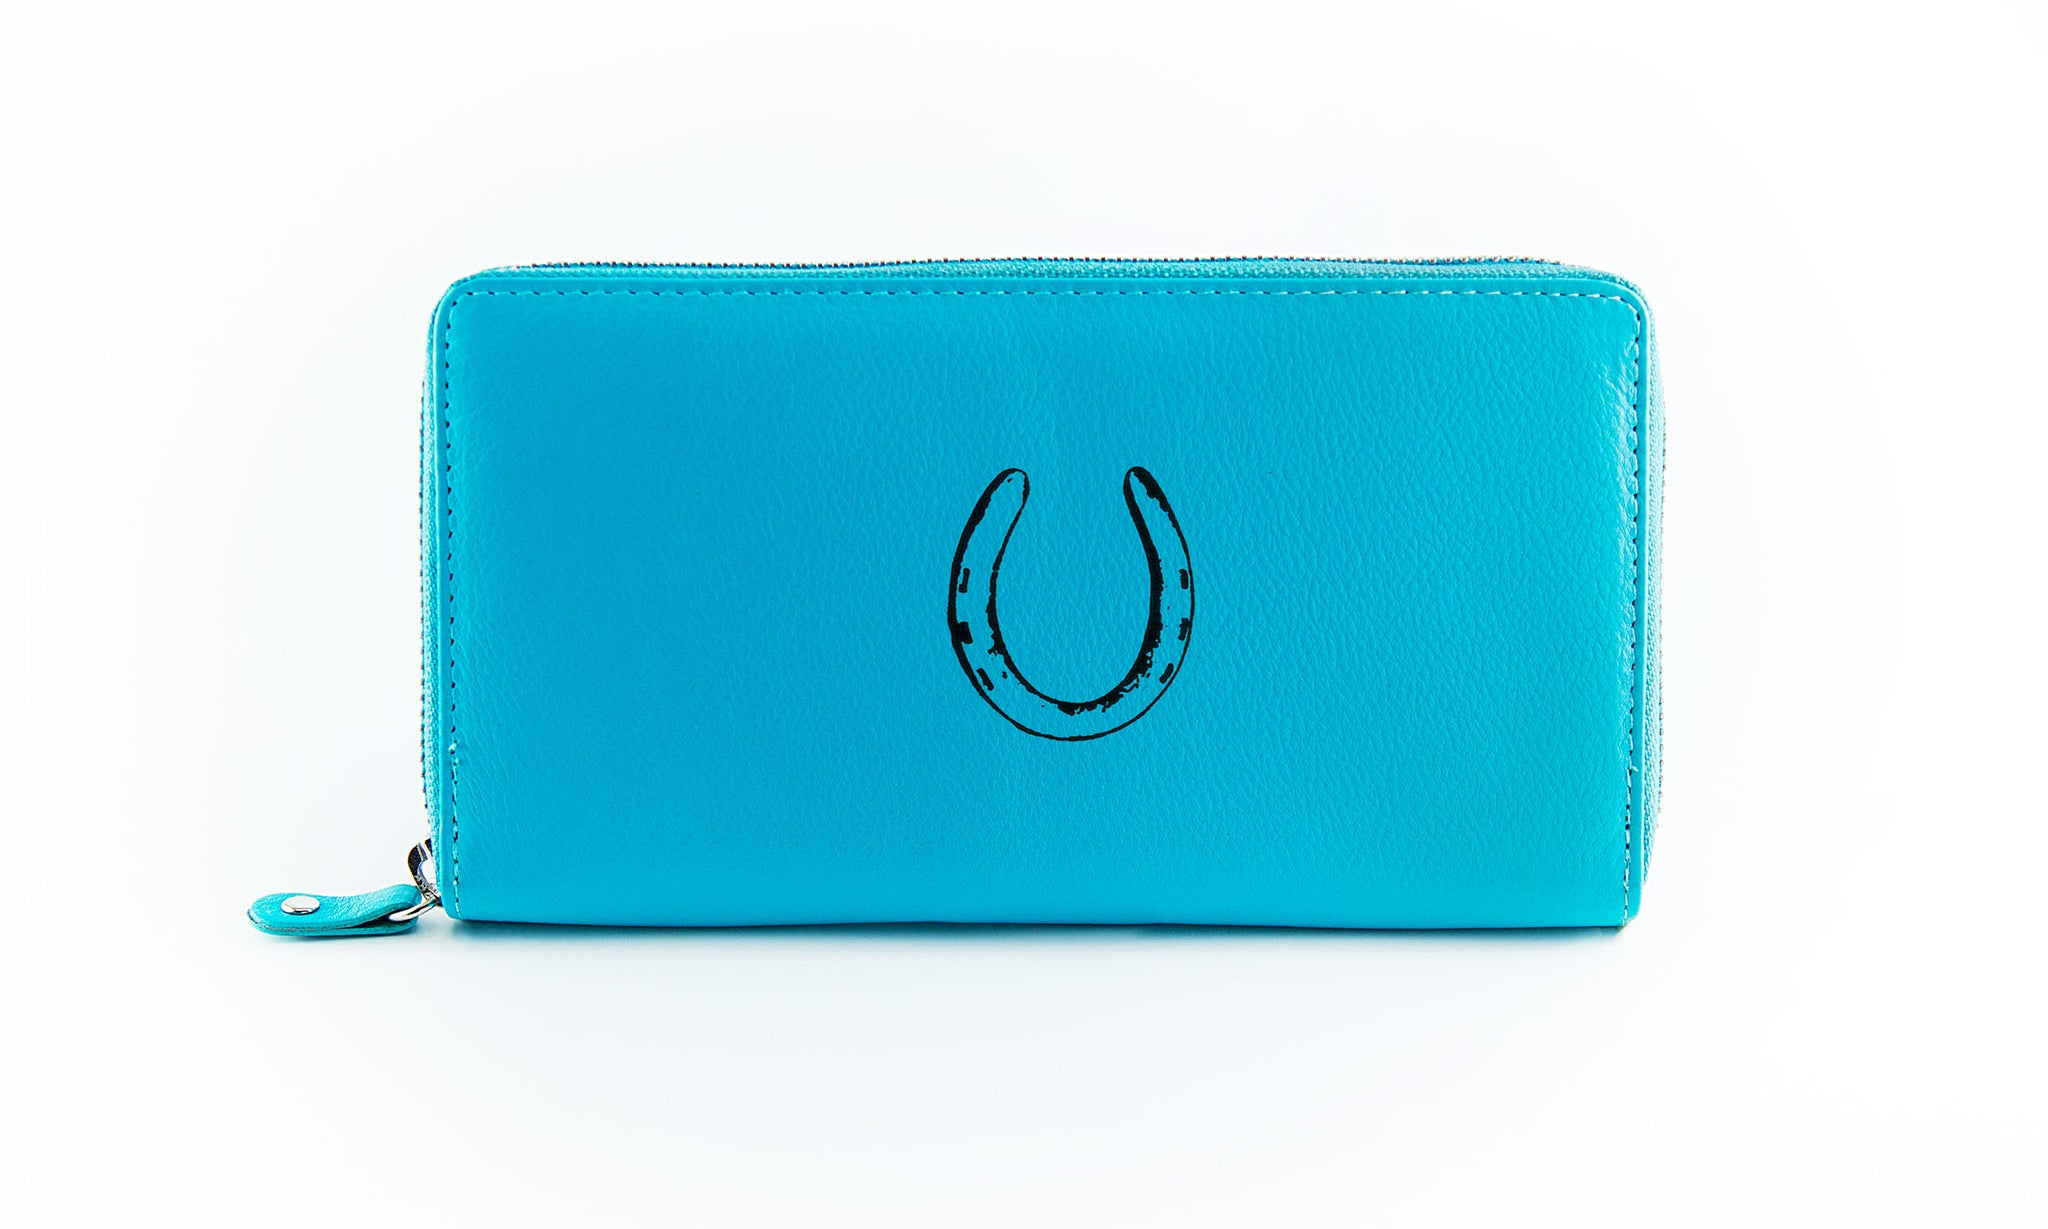 The Clutch - Aqua (Black Print)